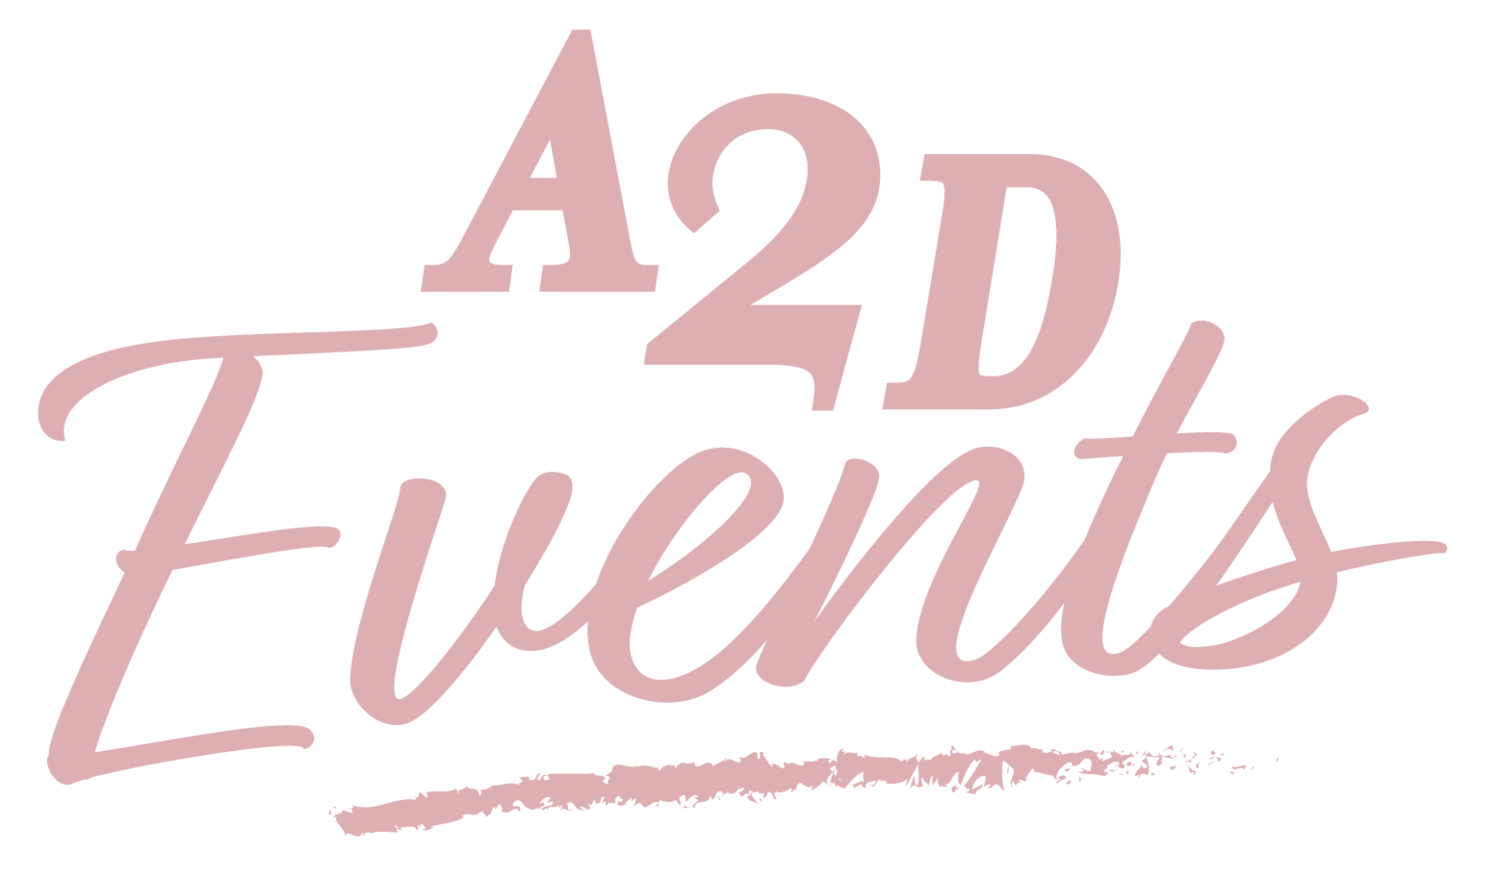 A2D Events